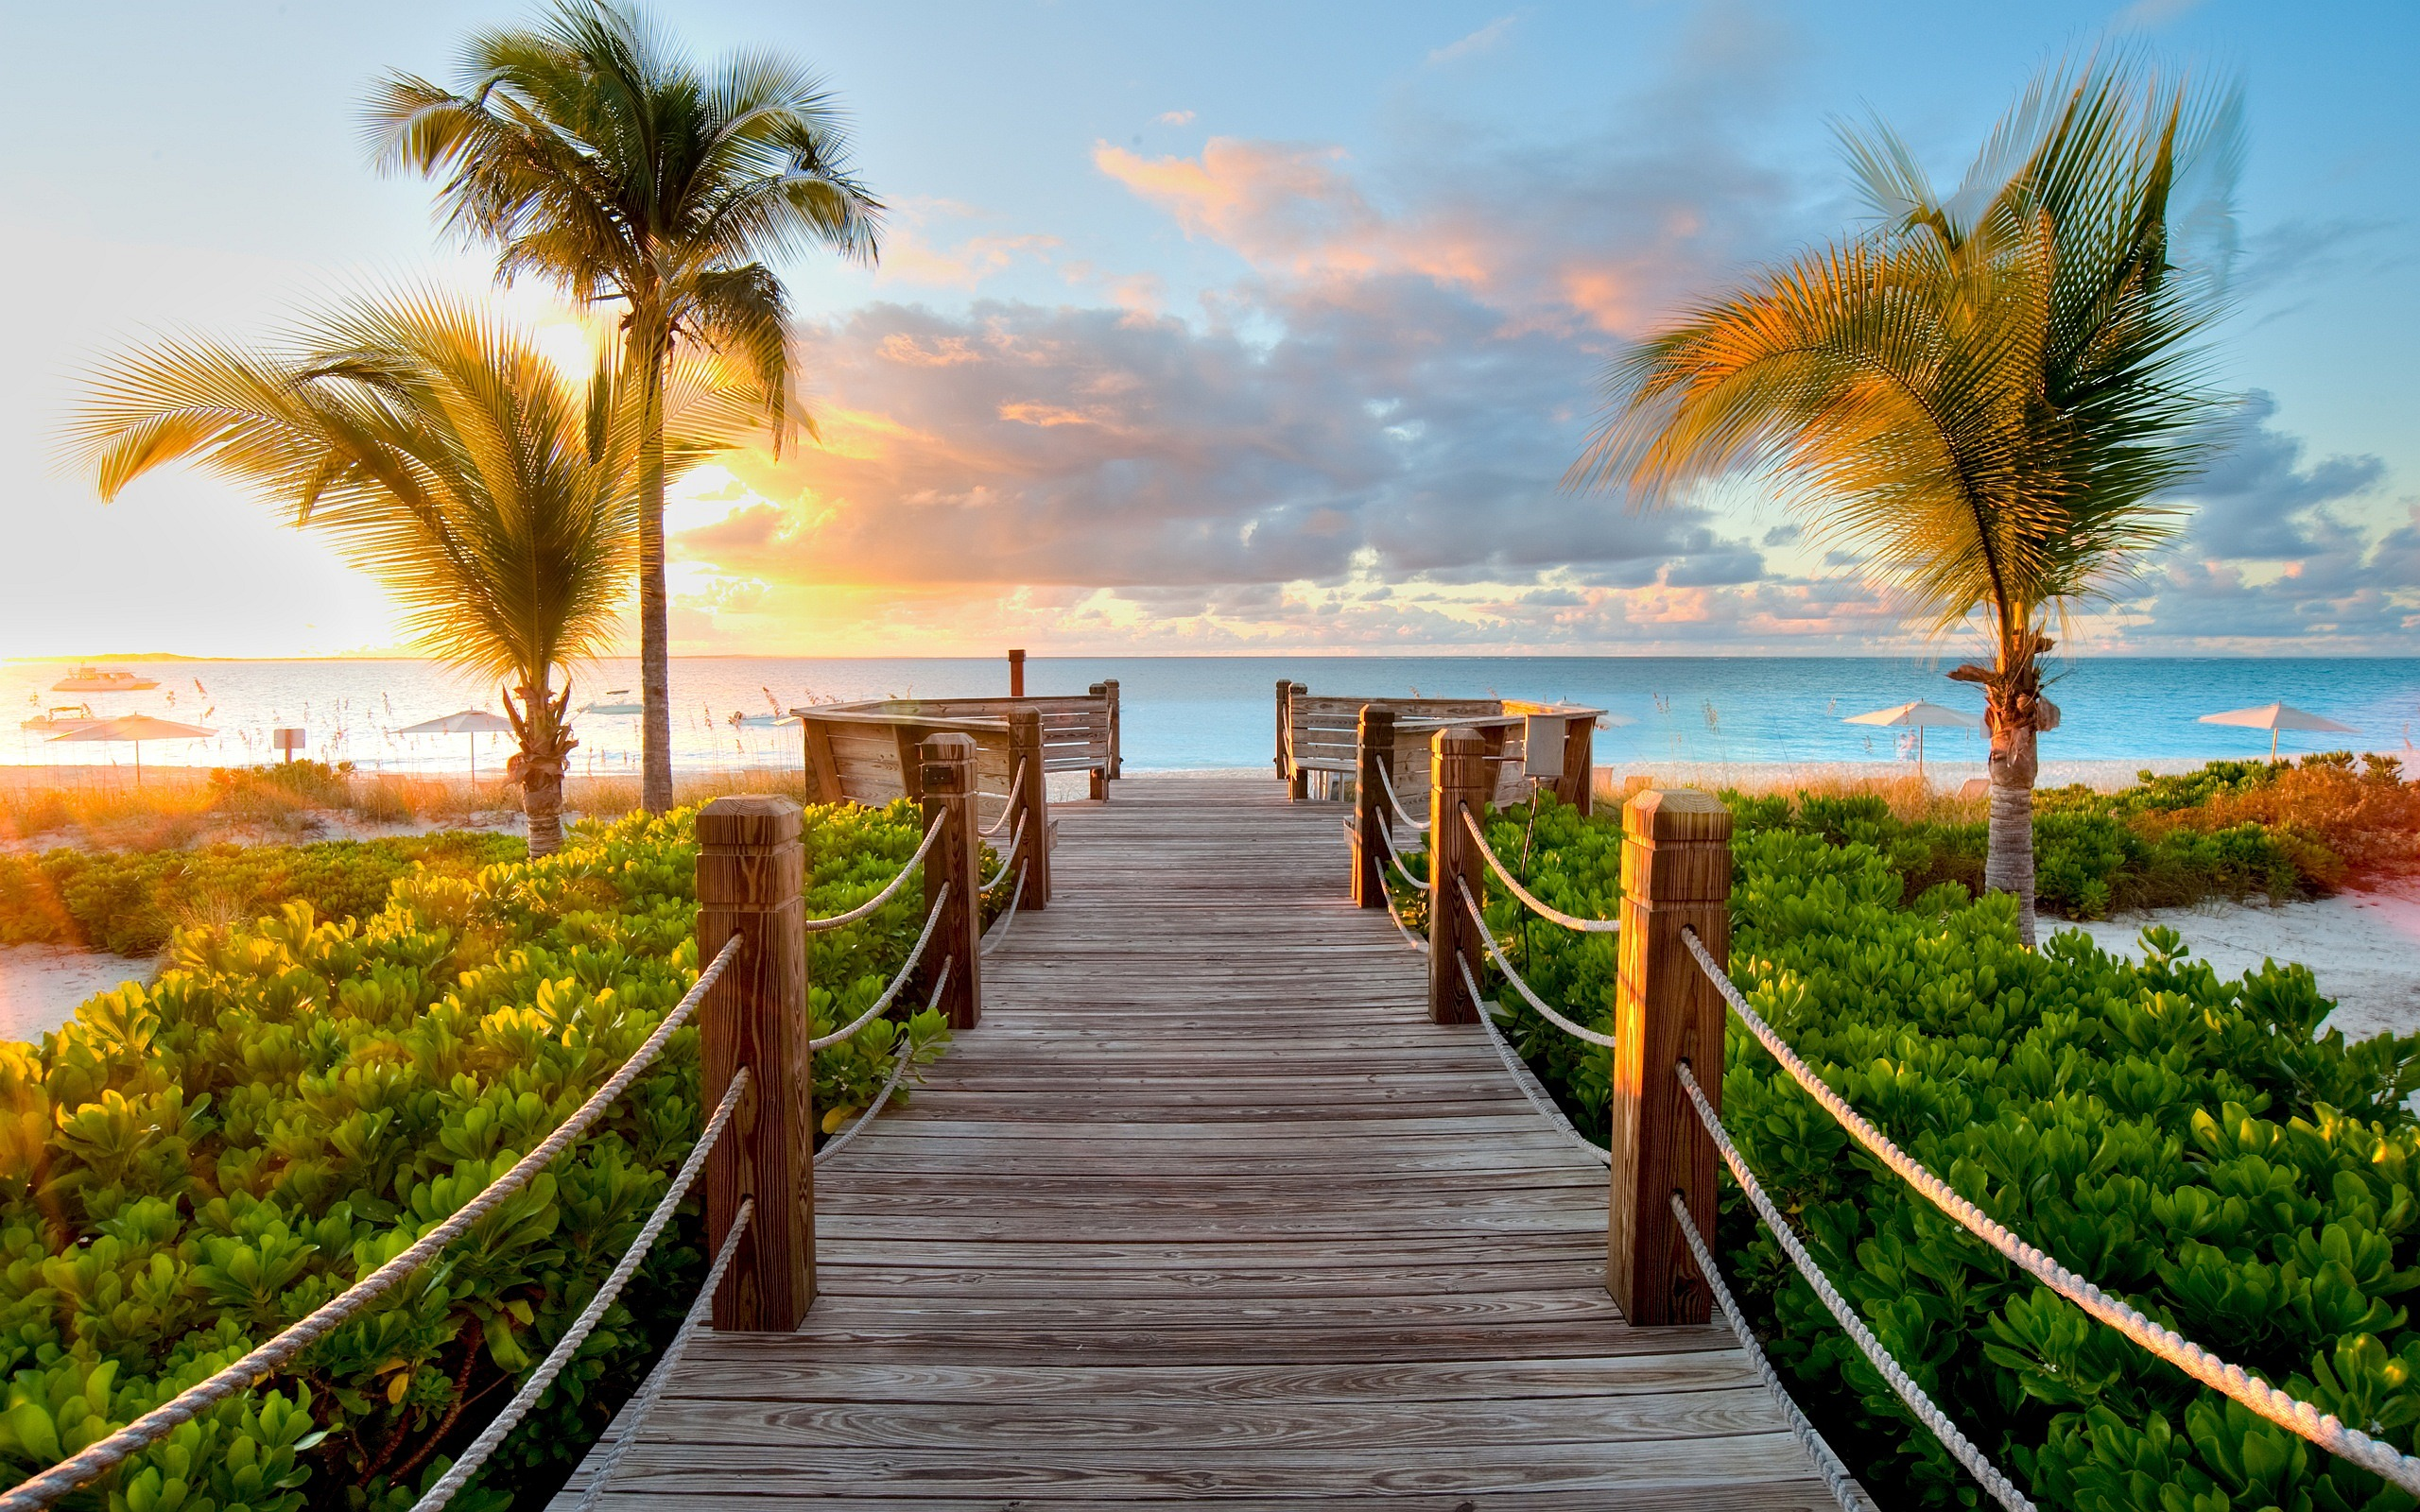 Awesome Caribbean Wood Beach picture